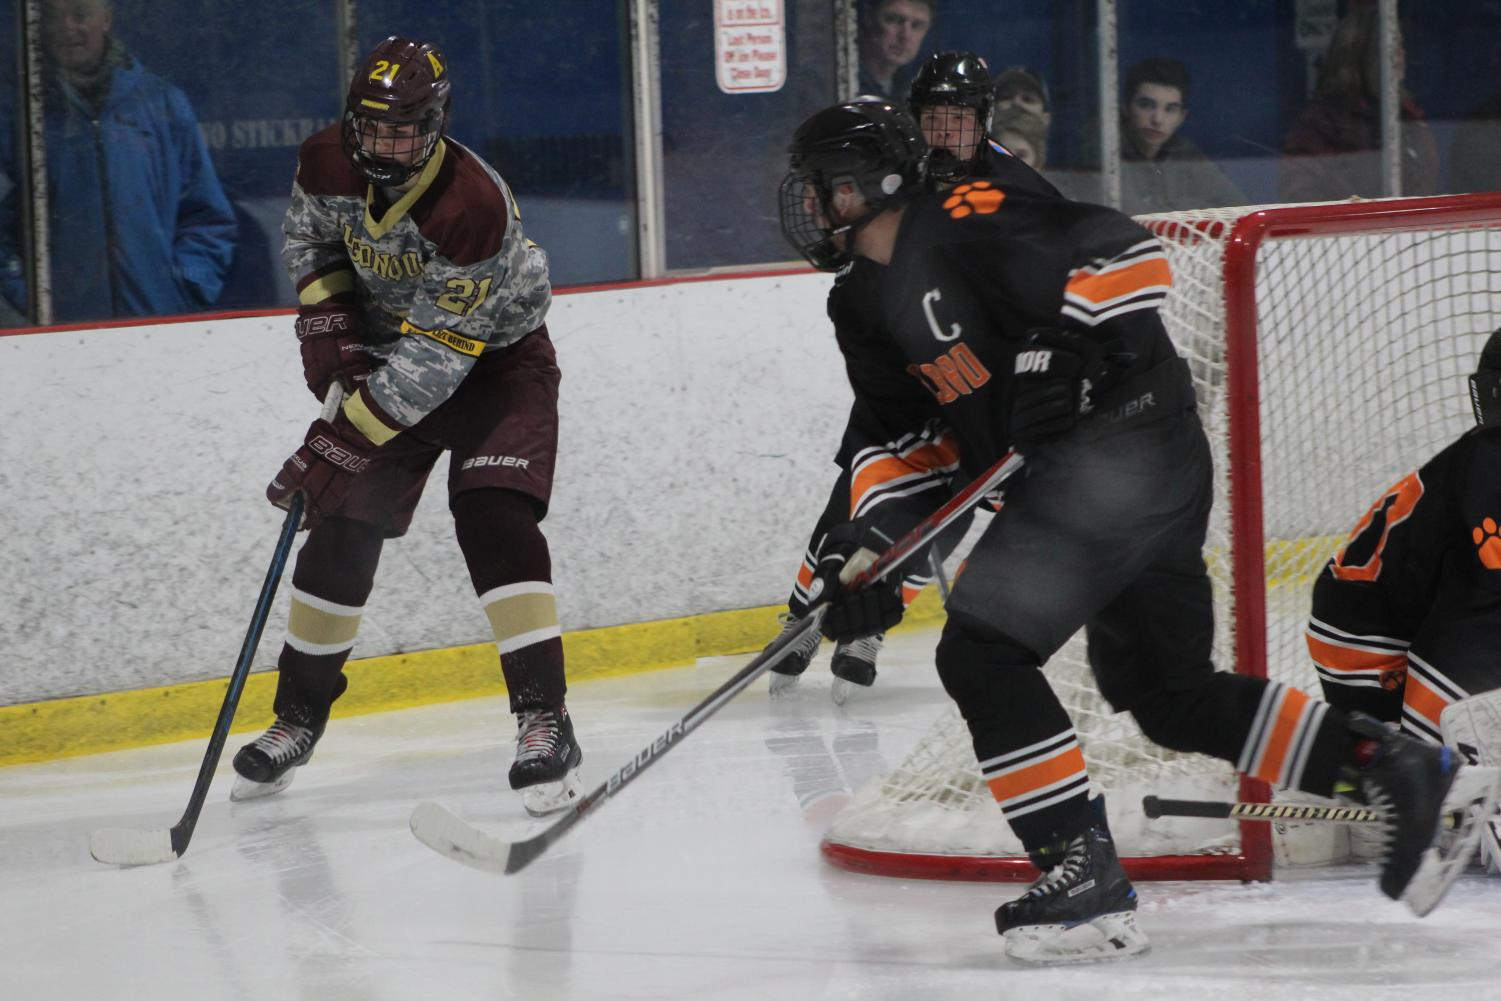 Junior Henry Alford gains control of the puck, as Marlborough plays defense.